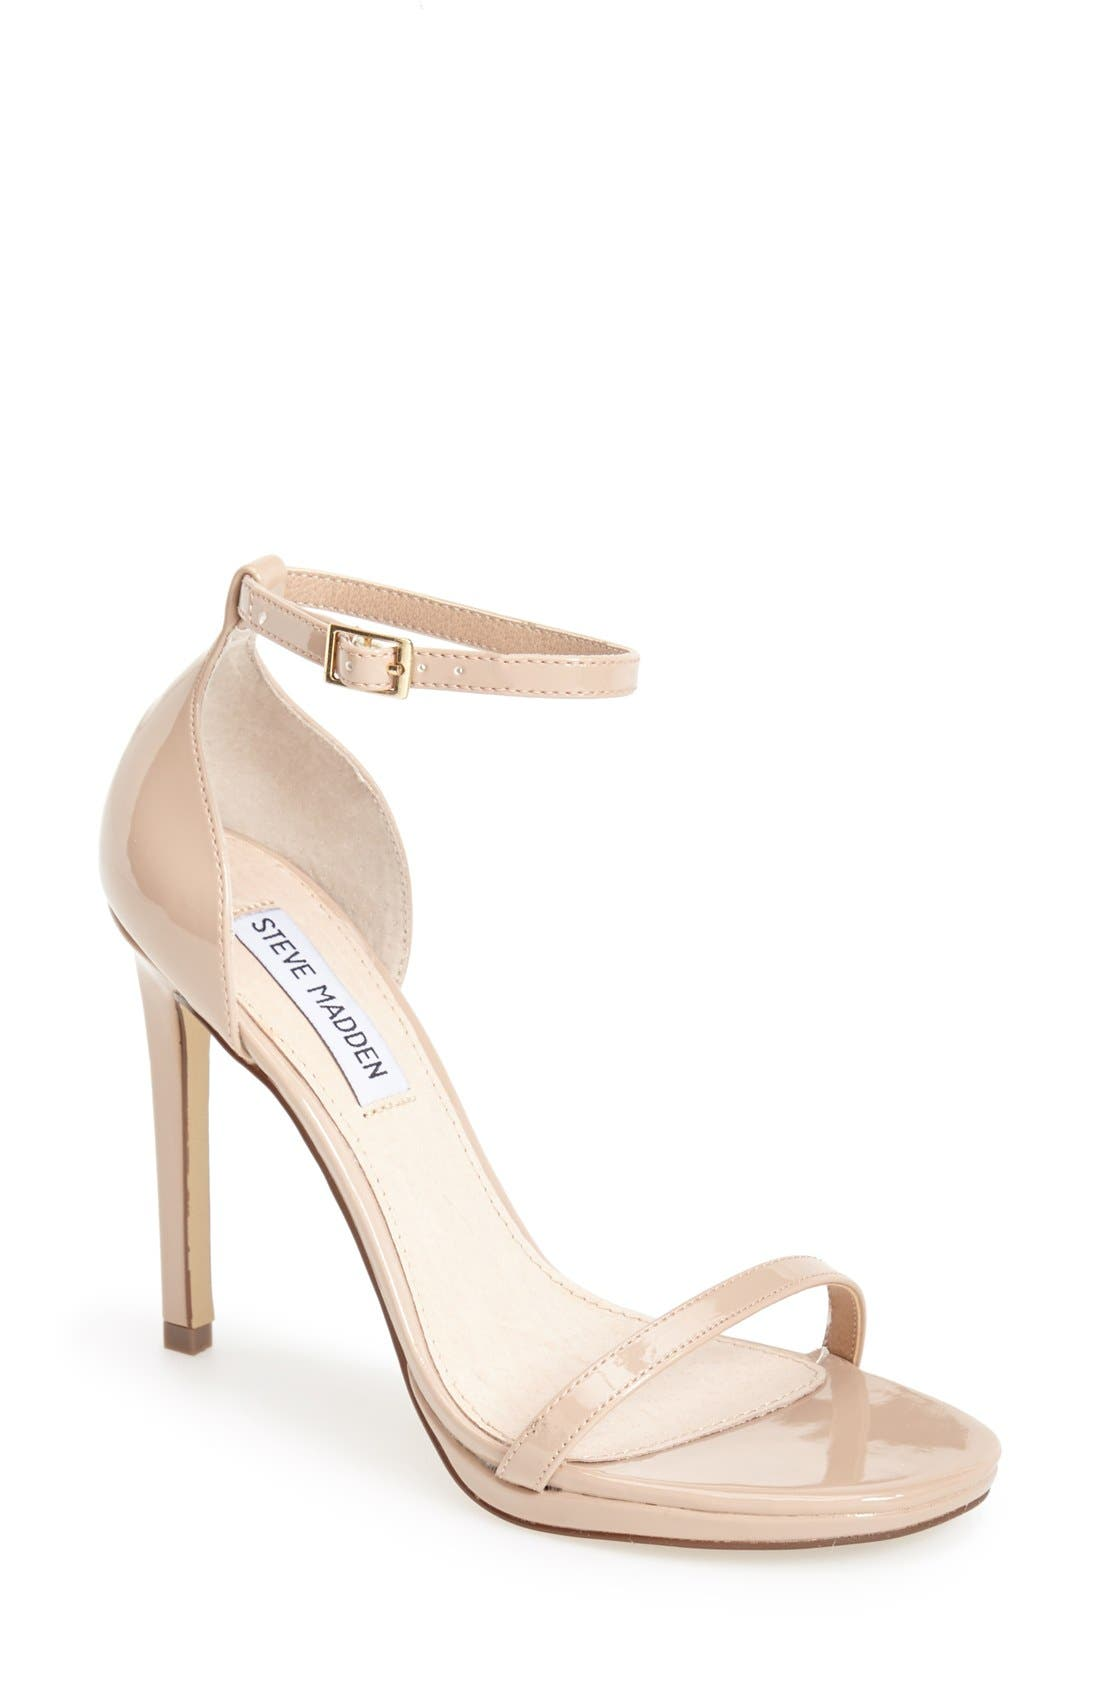 Alternate Image 1 Selected - Steve Madden 'Gea' Ankle Strap Sandal (Women)